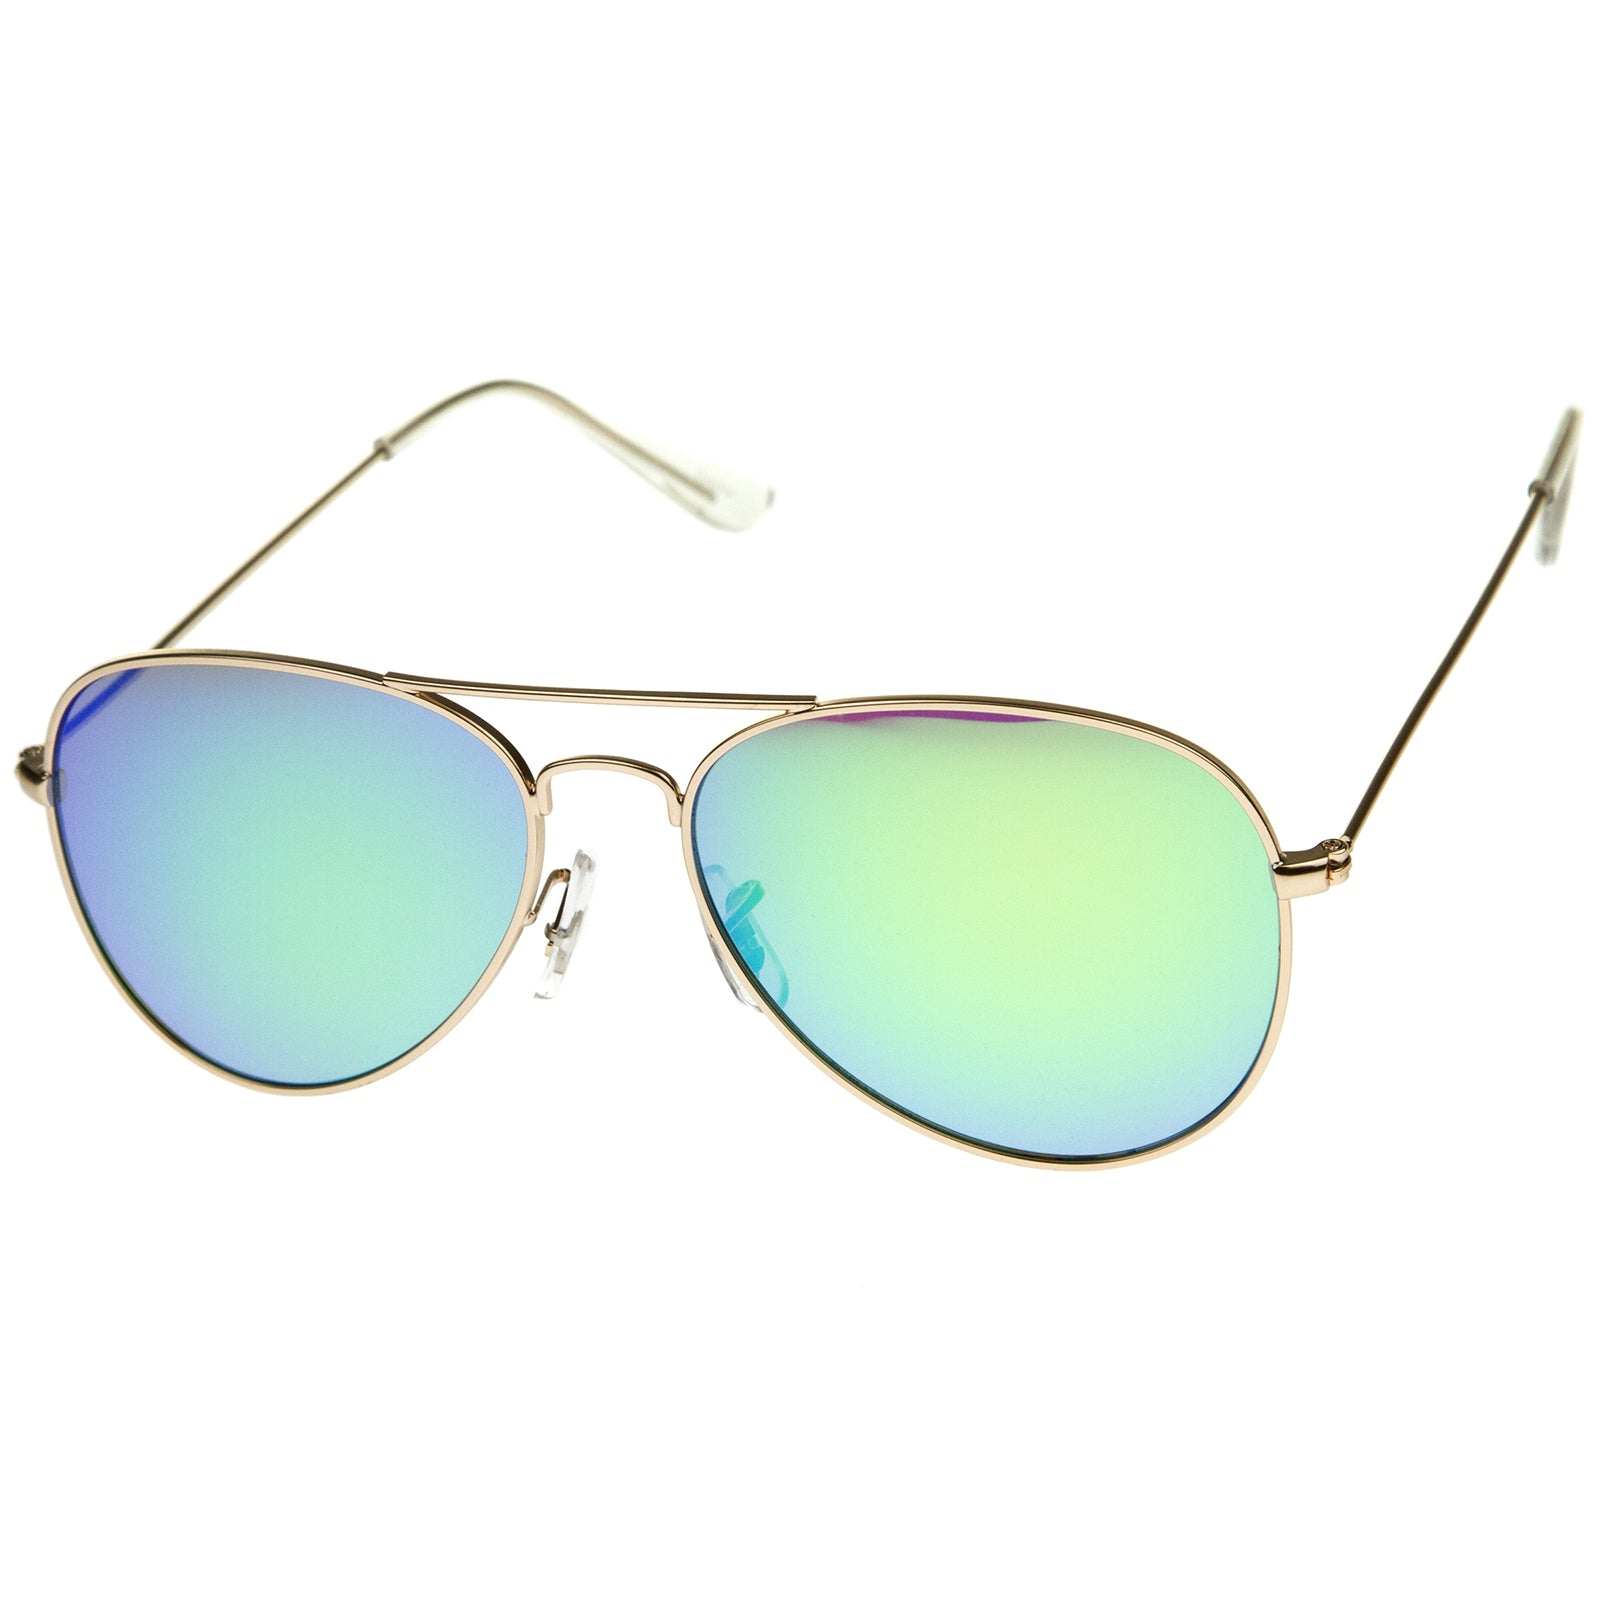 Premium Nickel Plated Frame Multi-Coated Mirror Lens Aviator Sunglasses 59mm - sunglass.la - 10